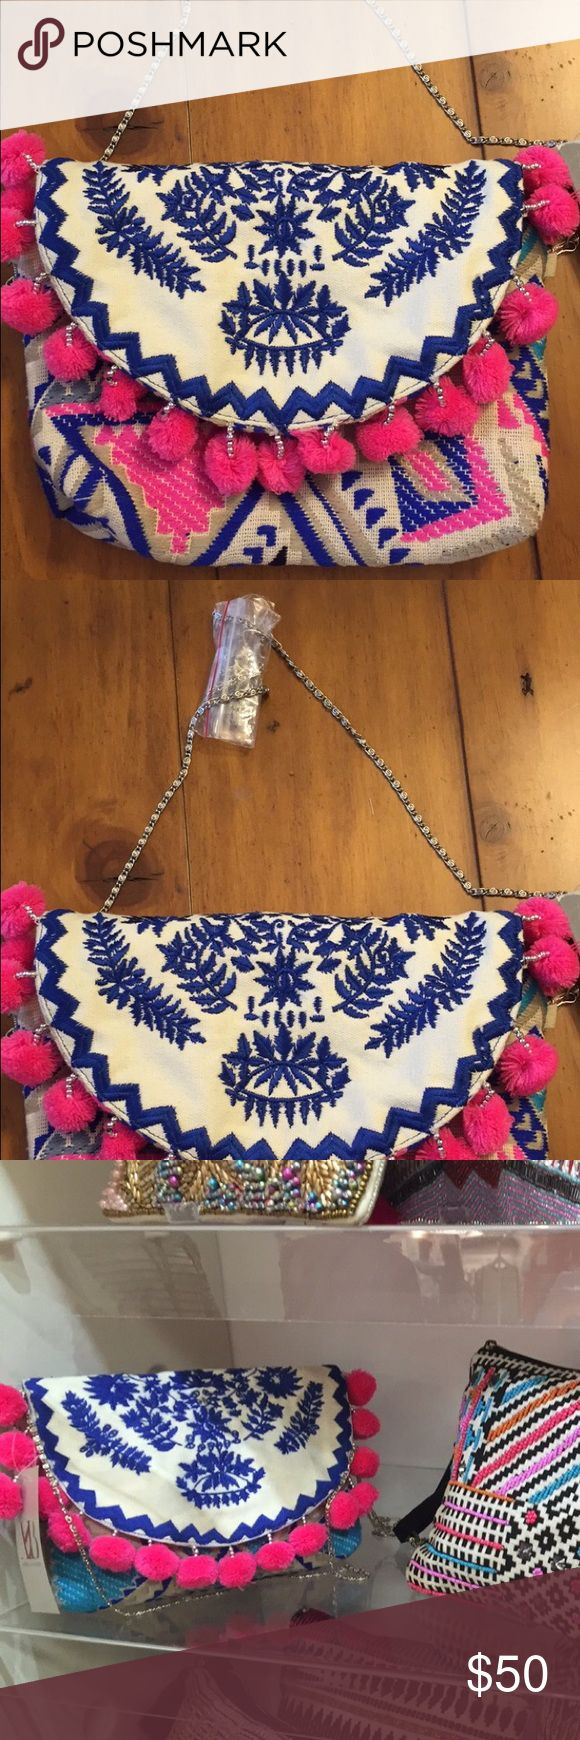 NWT Pom Pom clutch New with tags pom Pom clutch from my boutique Bags Clutches & Wristlets